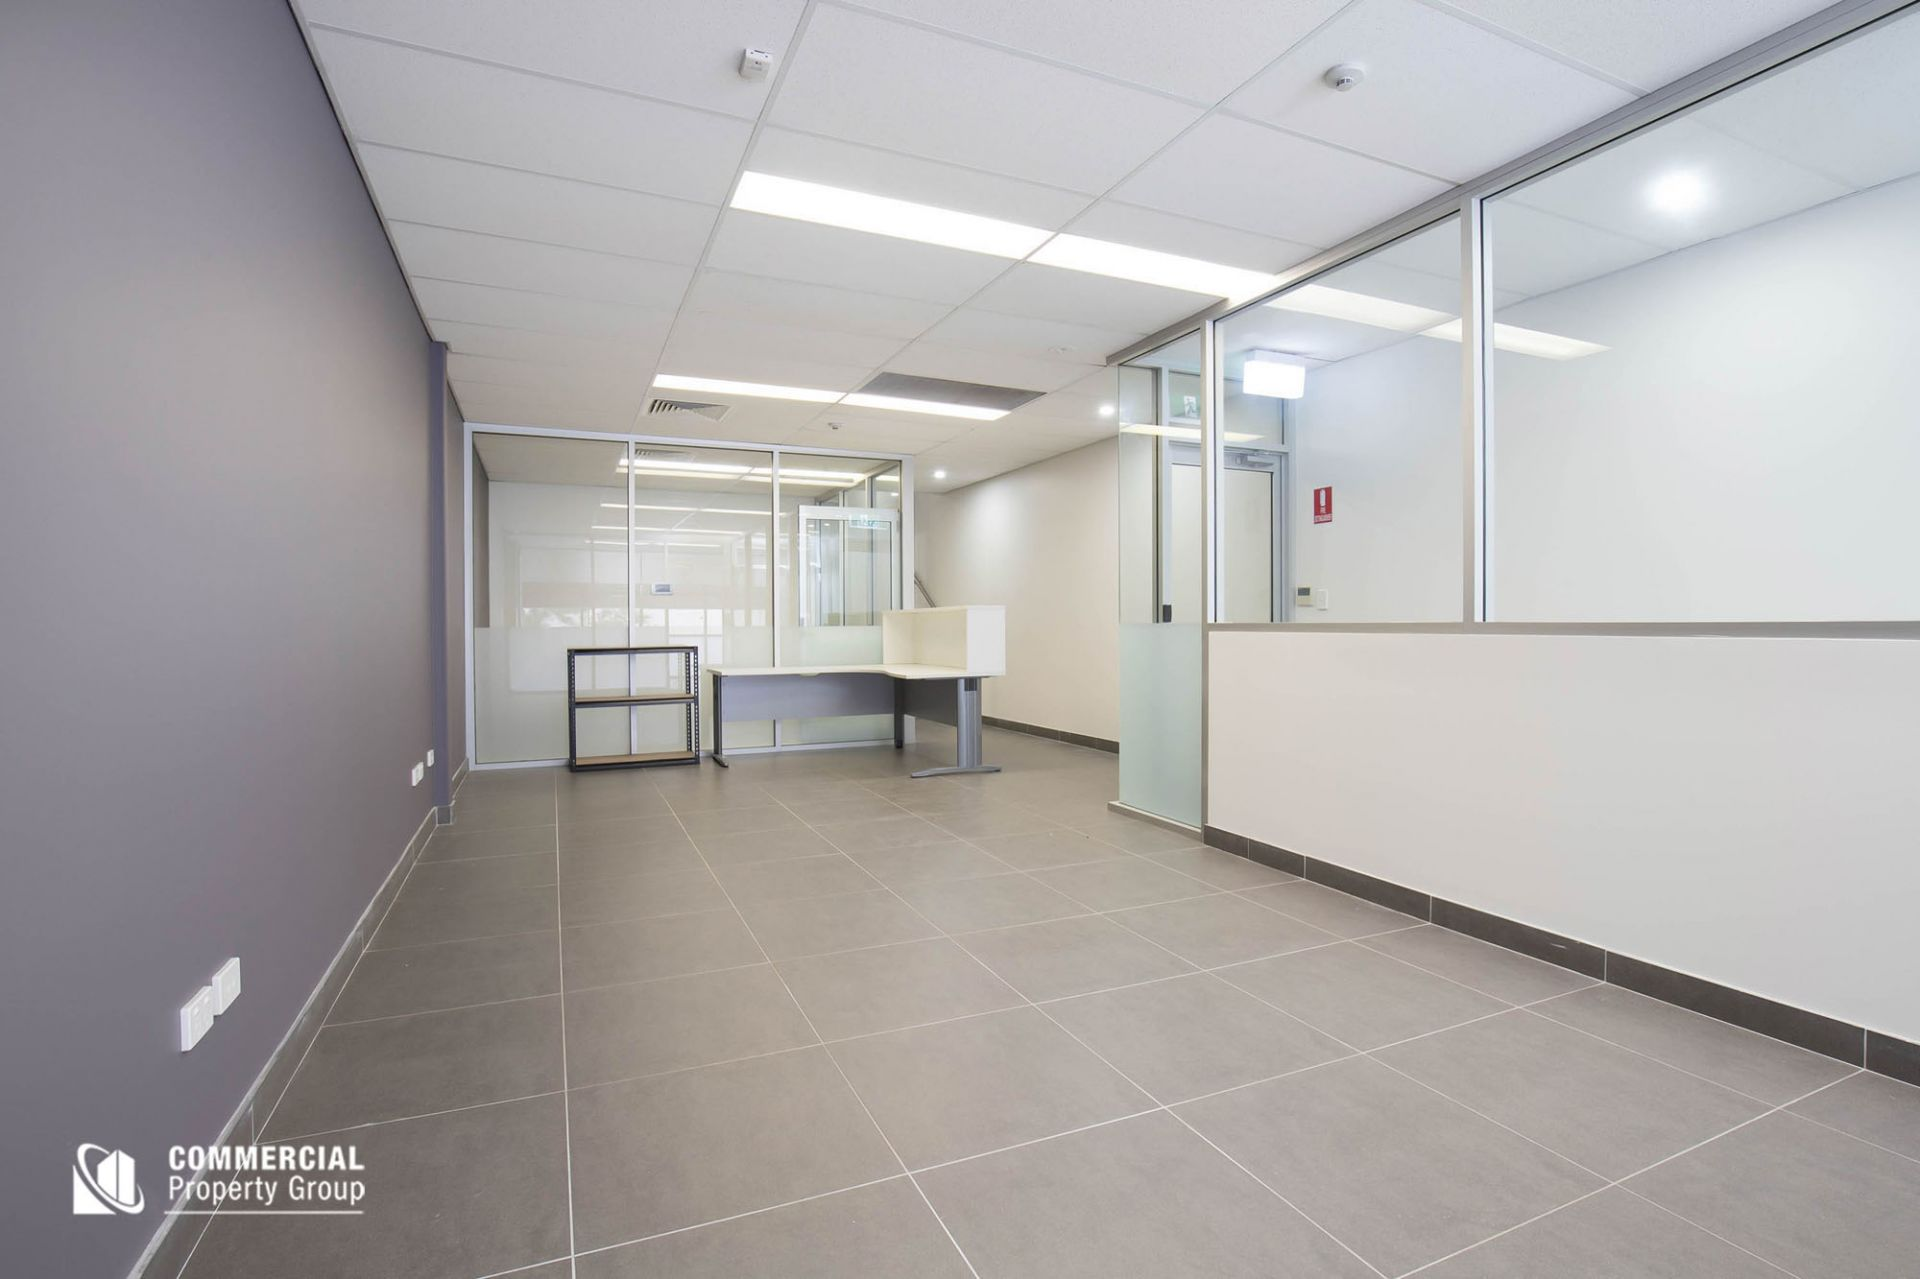 LEASED BY MITCHELL OWEN - HI-TECH & HIGH CLASS FIT-OUT - MOVE IN TOMORROW